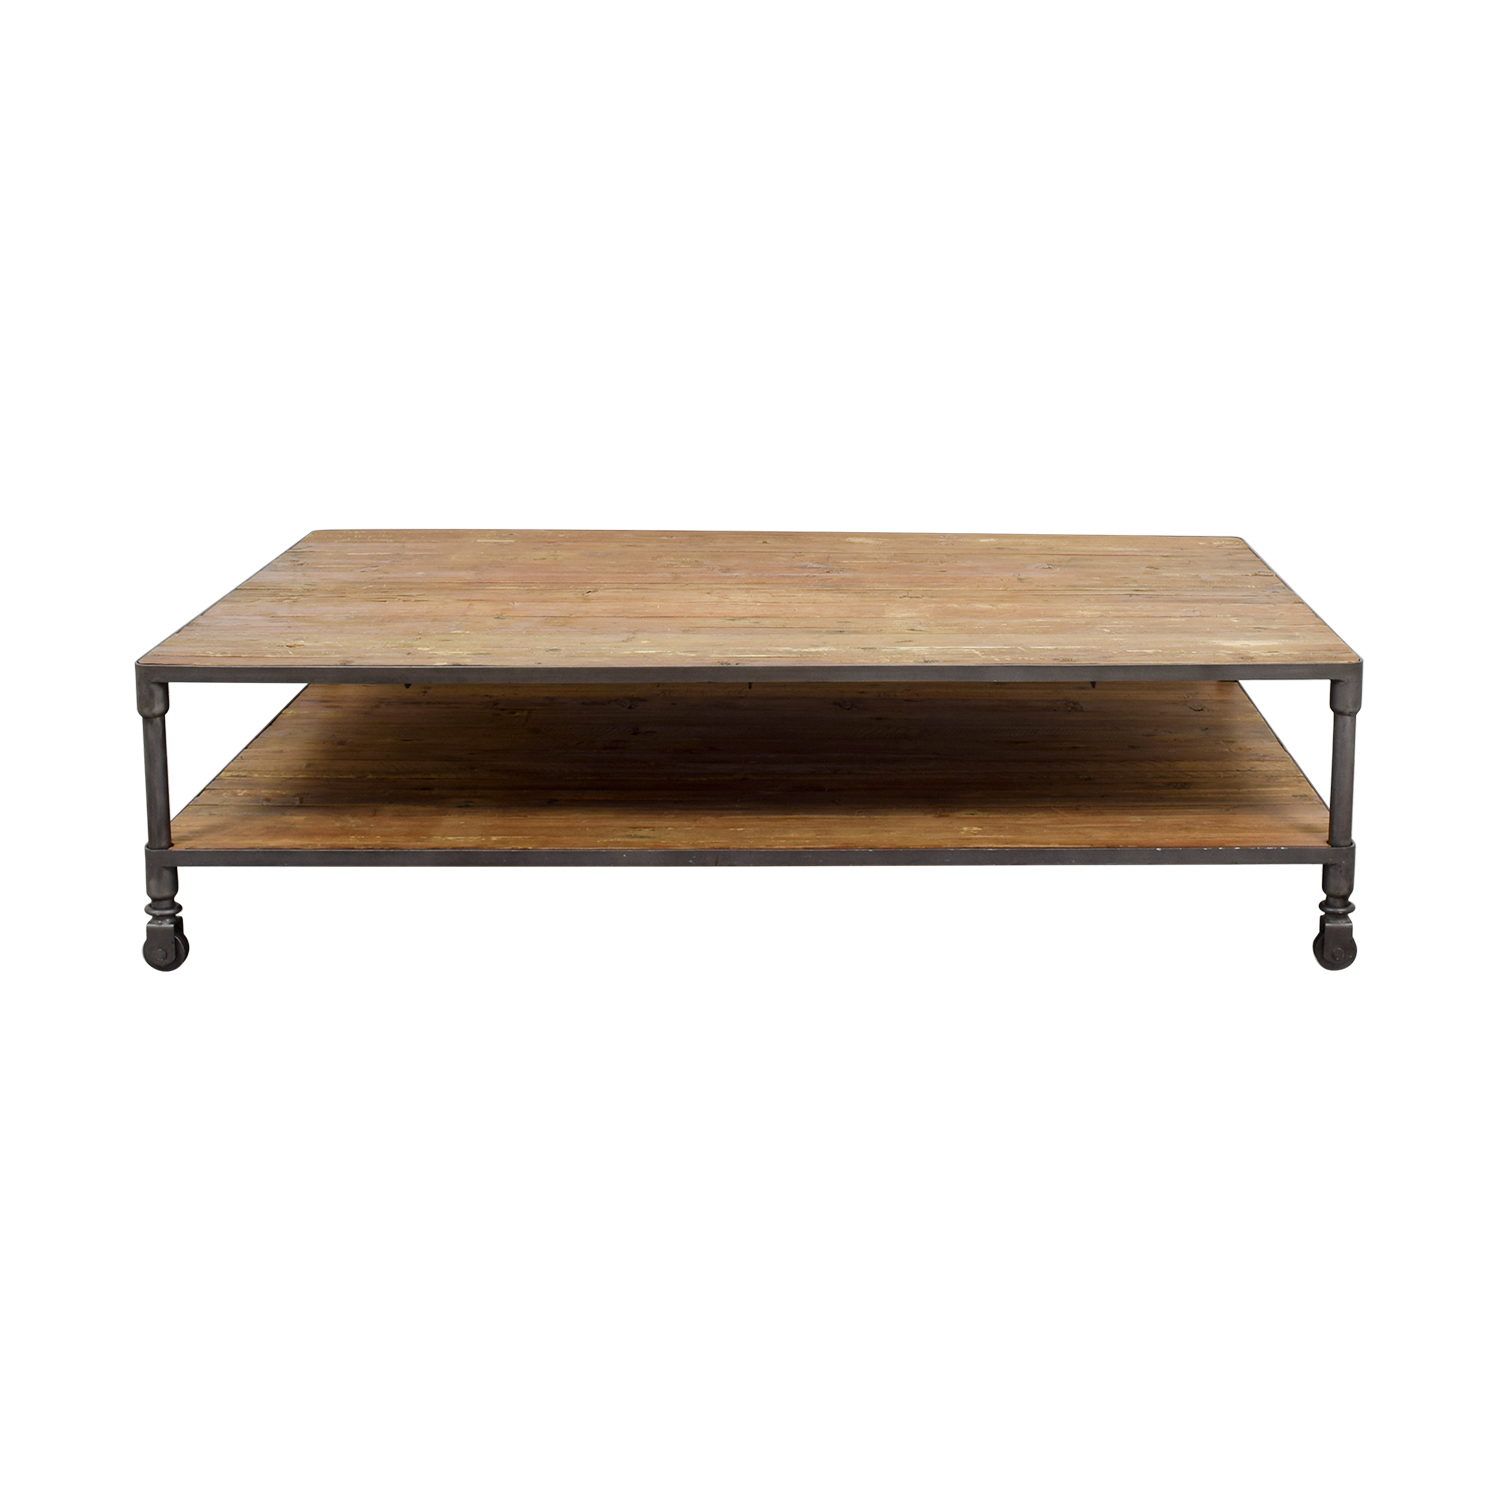 ABC Carpet & Home ABC Carpet & Home Reclaimed Wood Coffee Table coupon